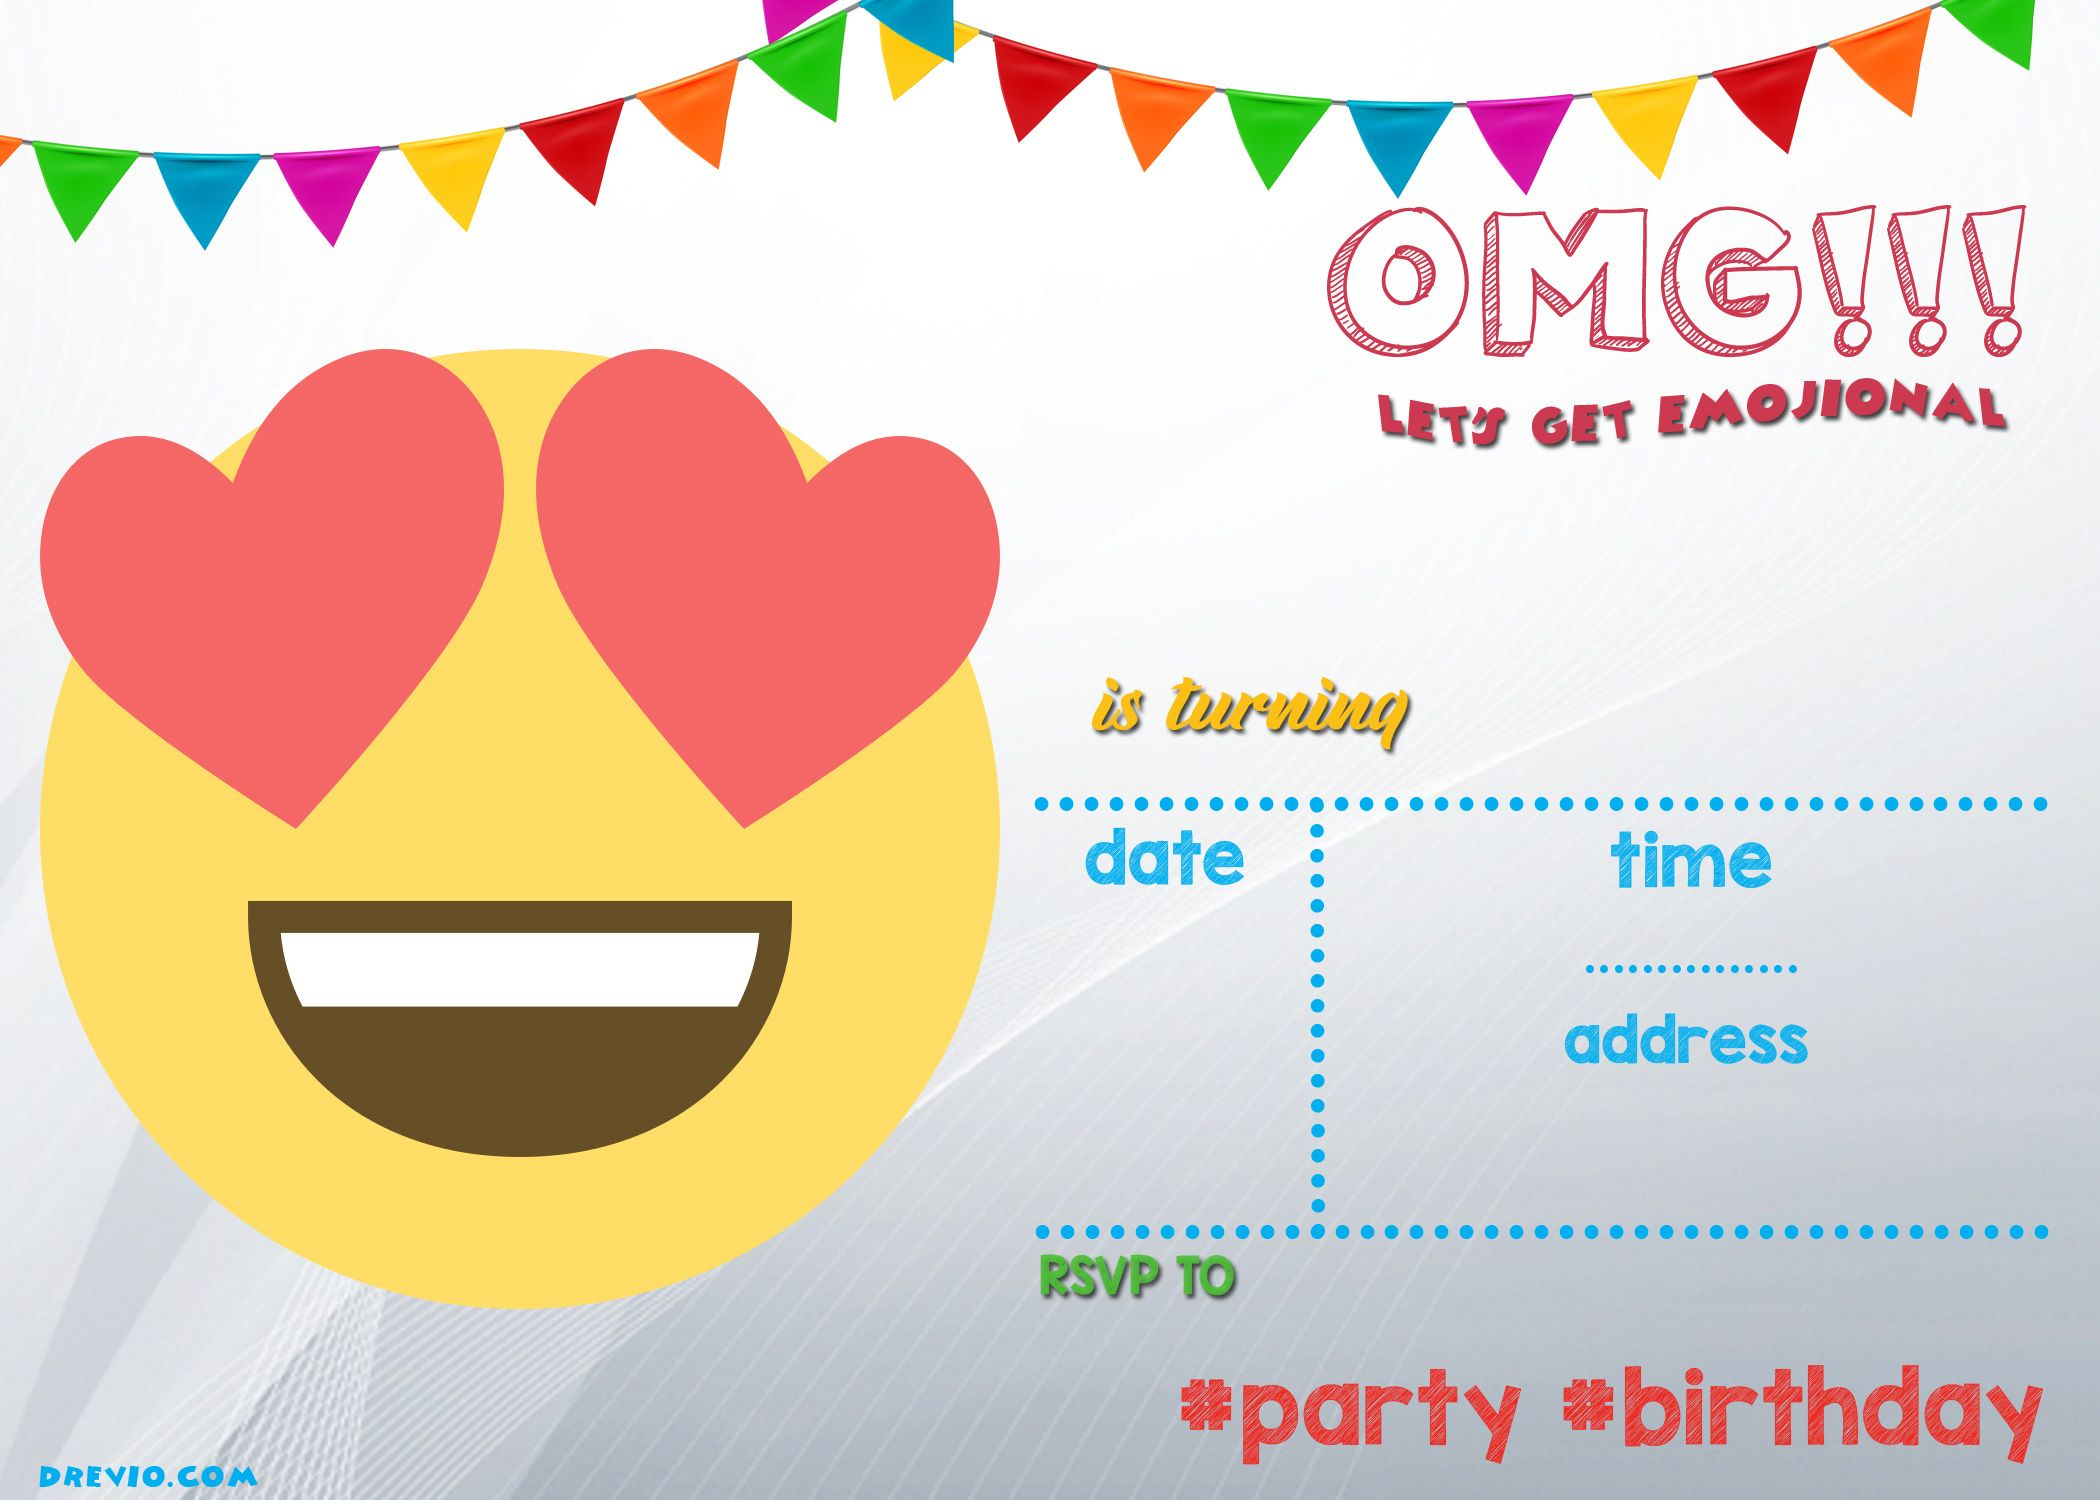 image relating to Emoji Invitations Printable Free known as Cost-free Printable Emoji Invitation Free of charge Printable Birthday